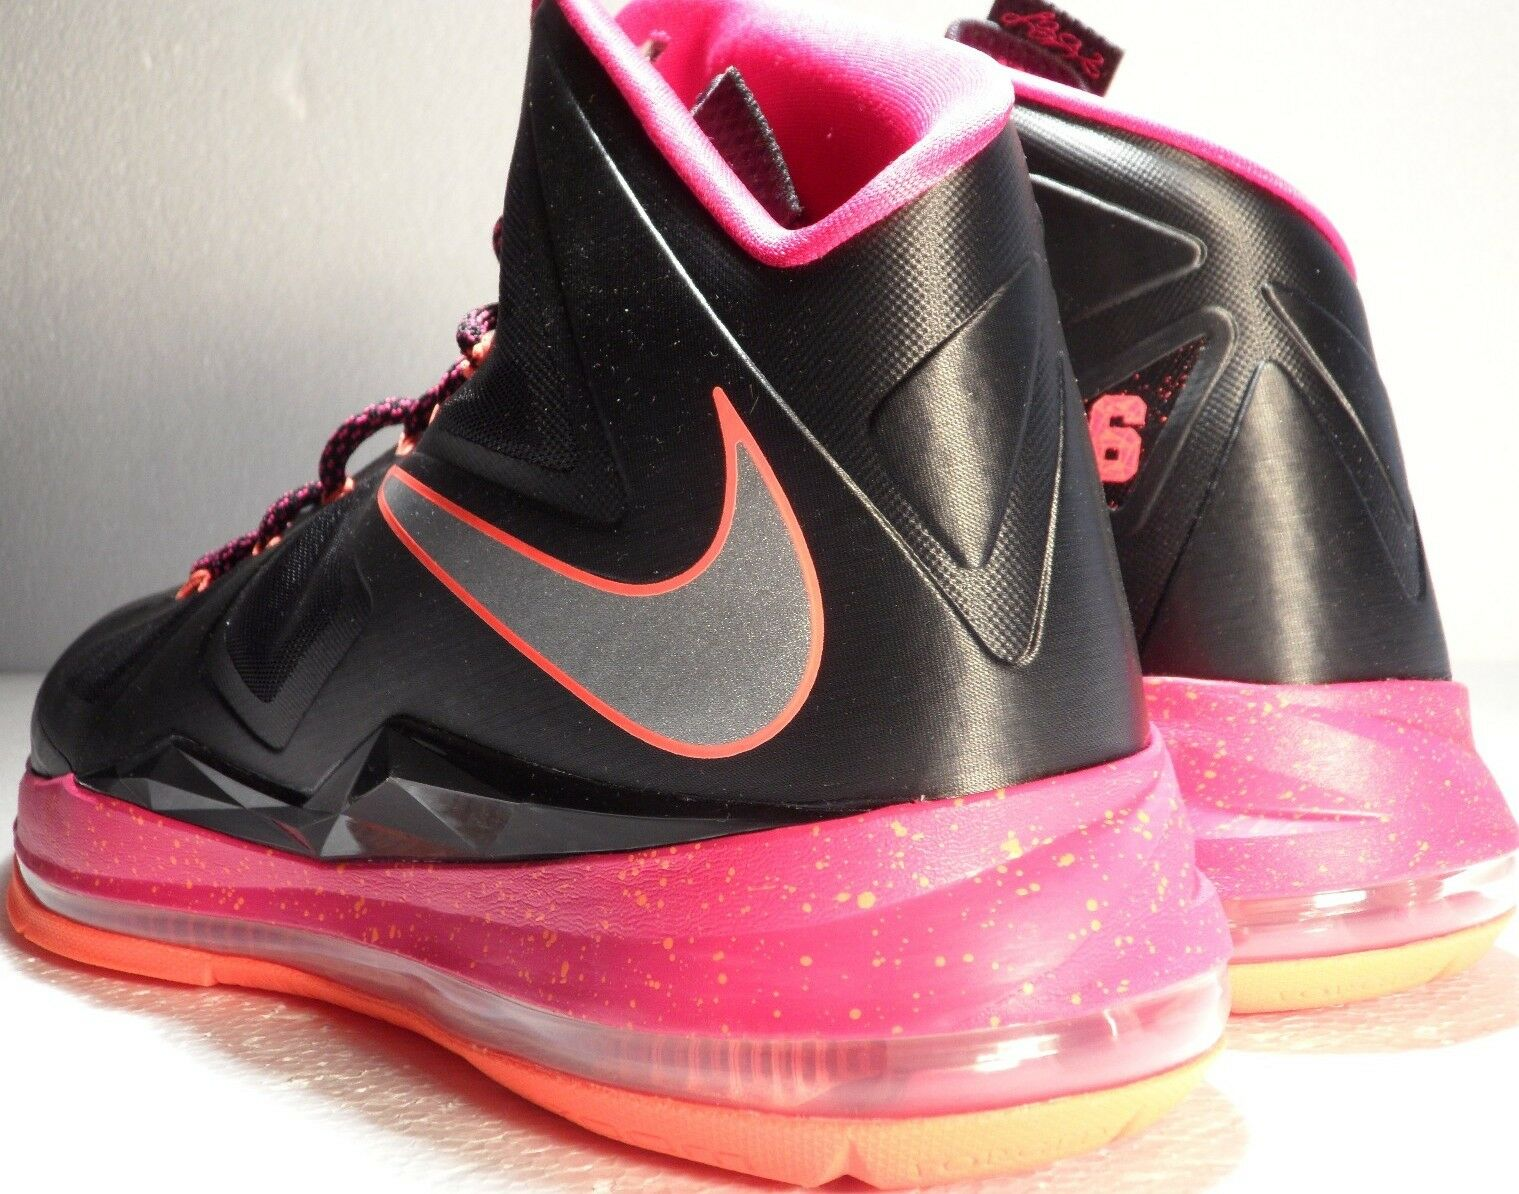 NIKE LEBRON X FLORIDIAN AWAY SZ: 15.0 ONLY ONE IN EBAY FIRREBERRY UNIQUE DS NEW